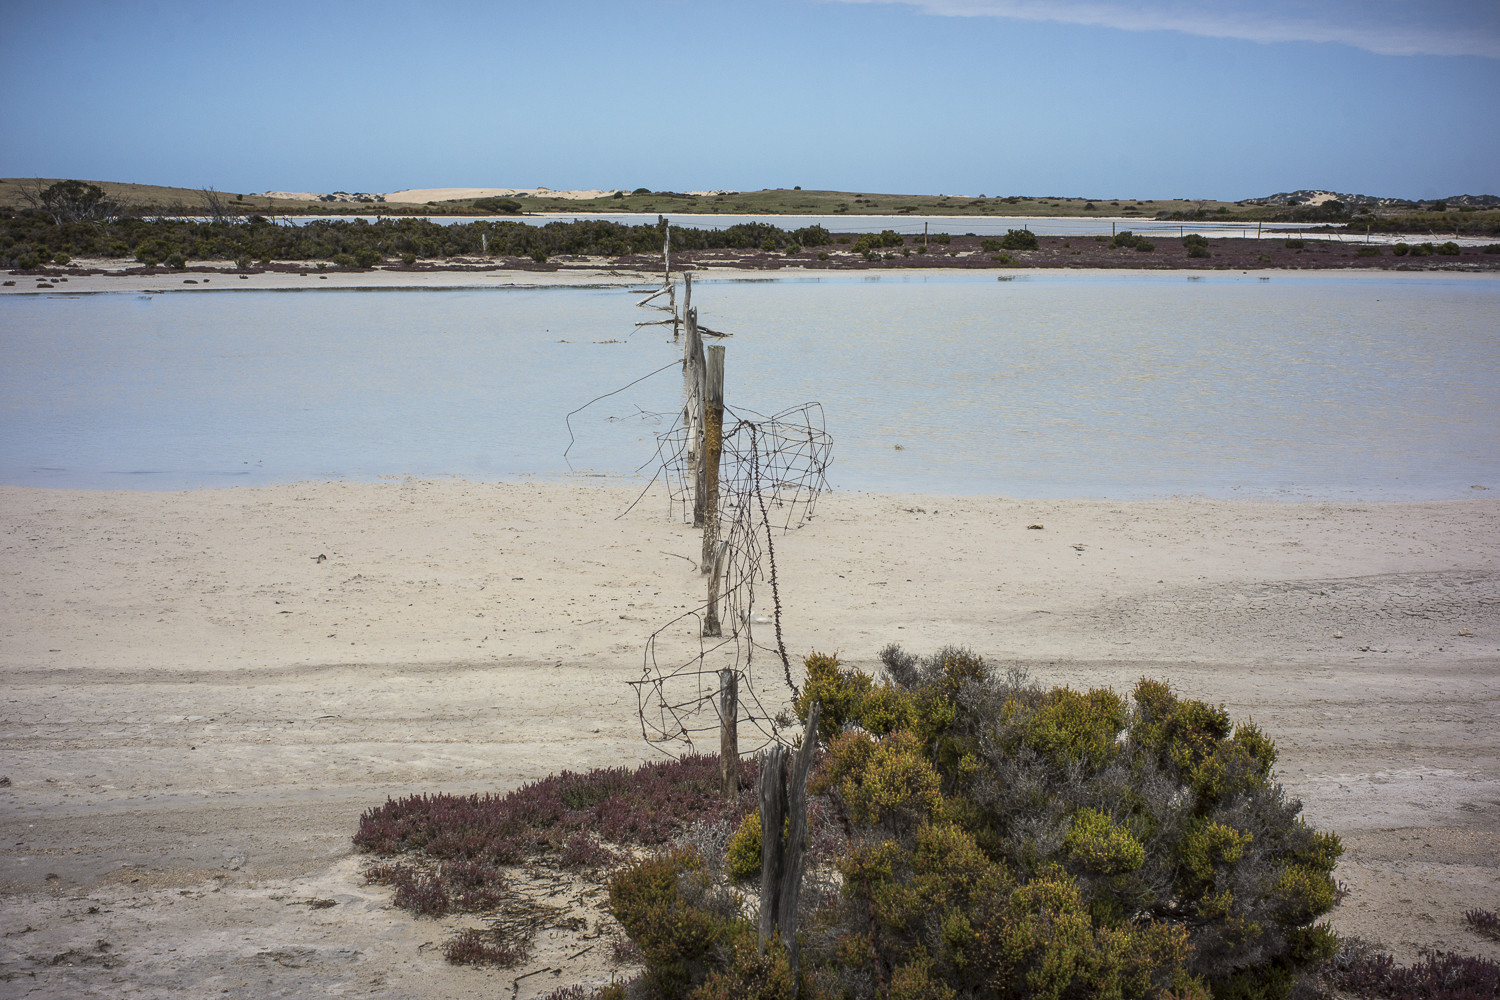 lagoons + fence, Coorong